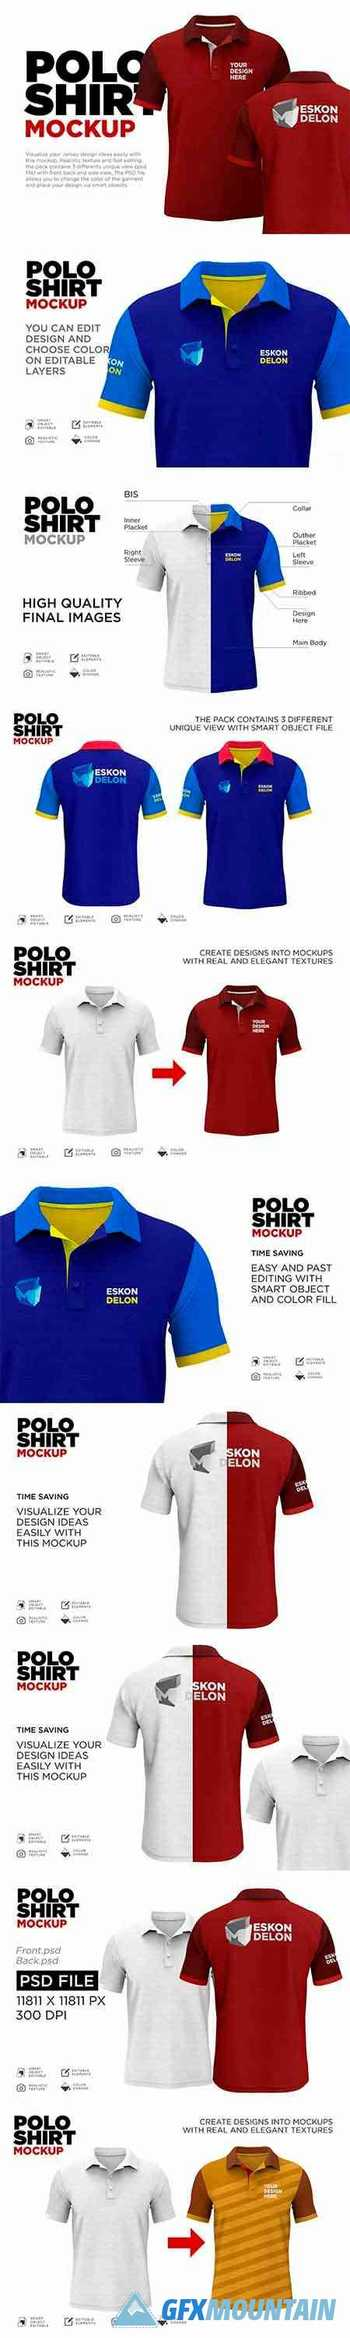 Polo Shirt Mockup Psd 5894833